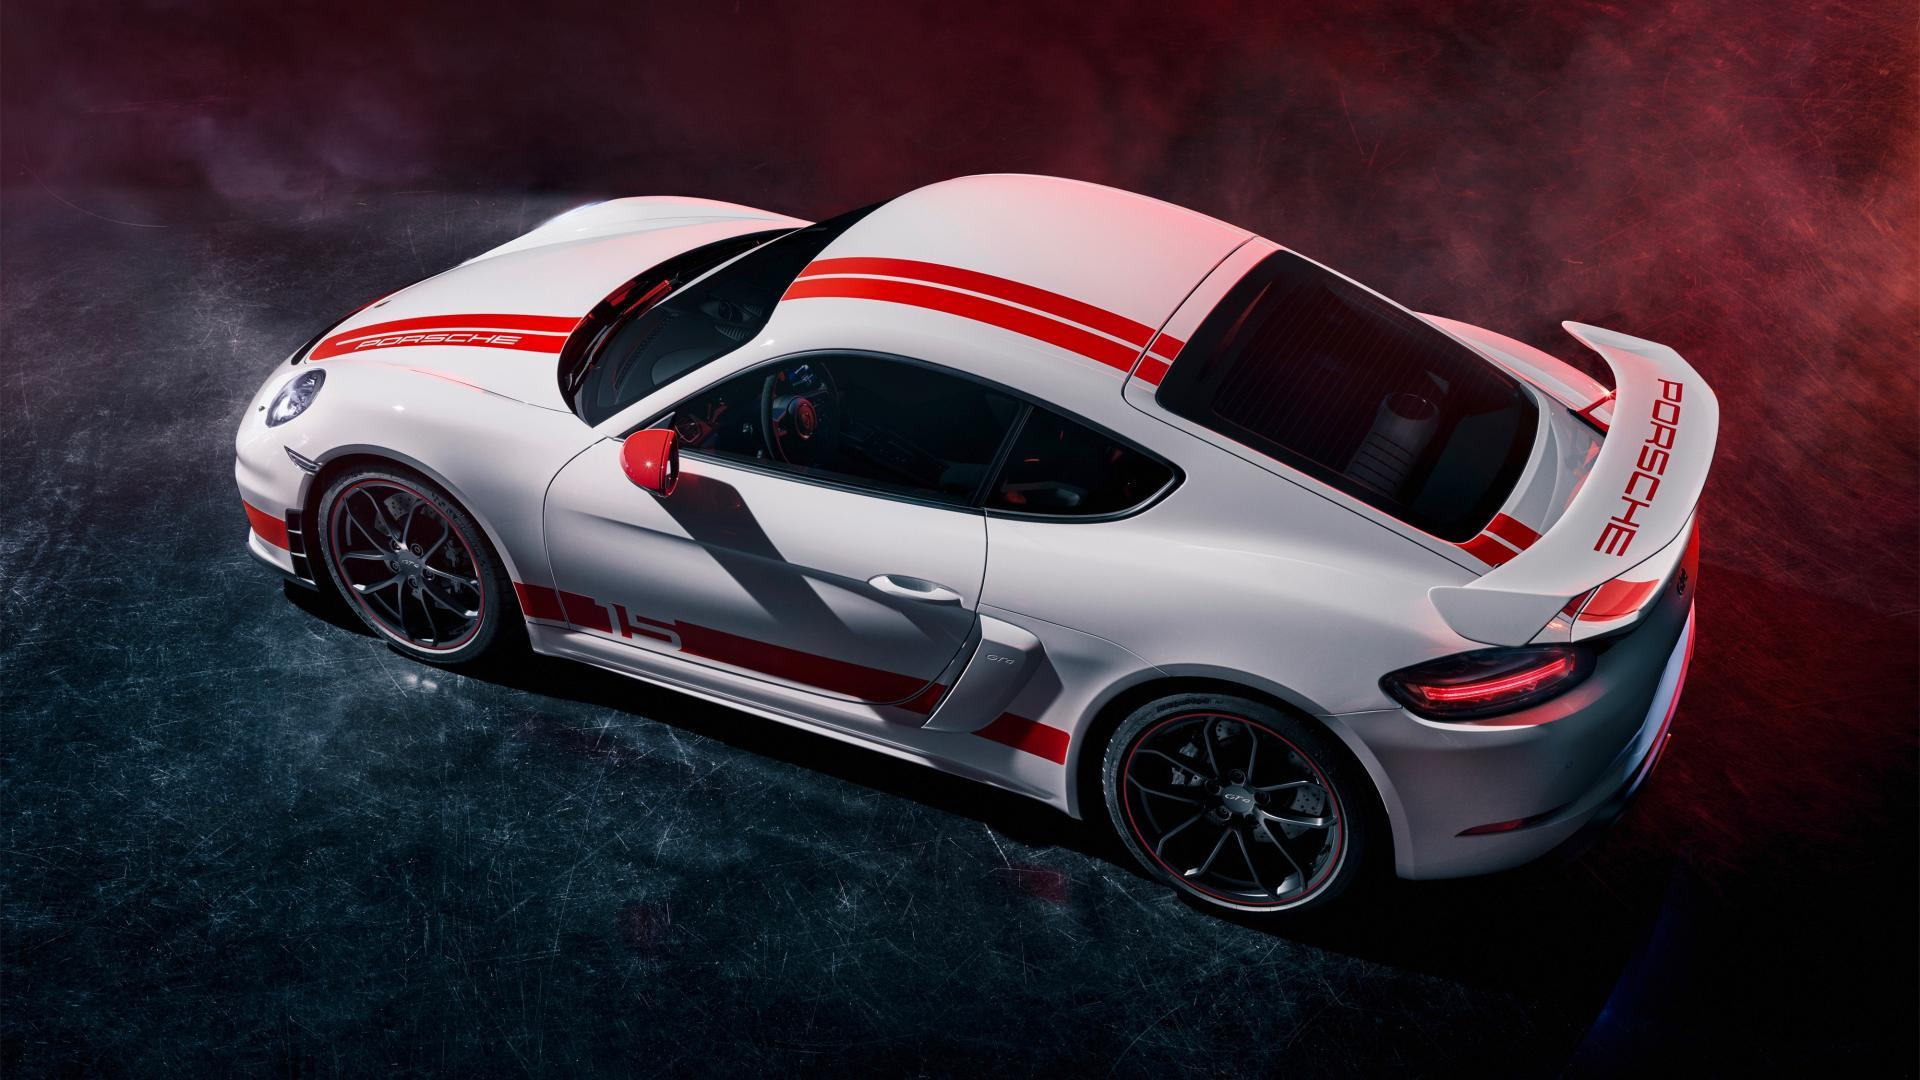 High 718 cayman gt4 sports cup edition 2019 porsche ag 1